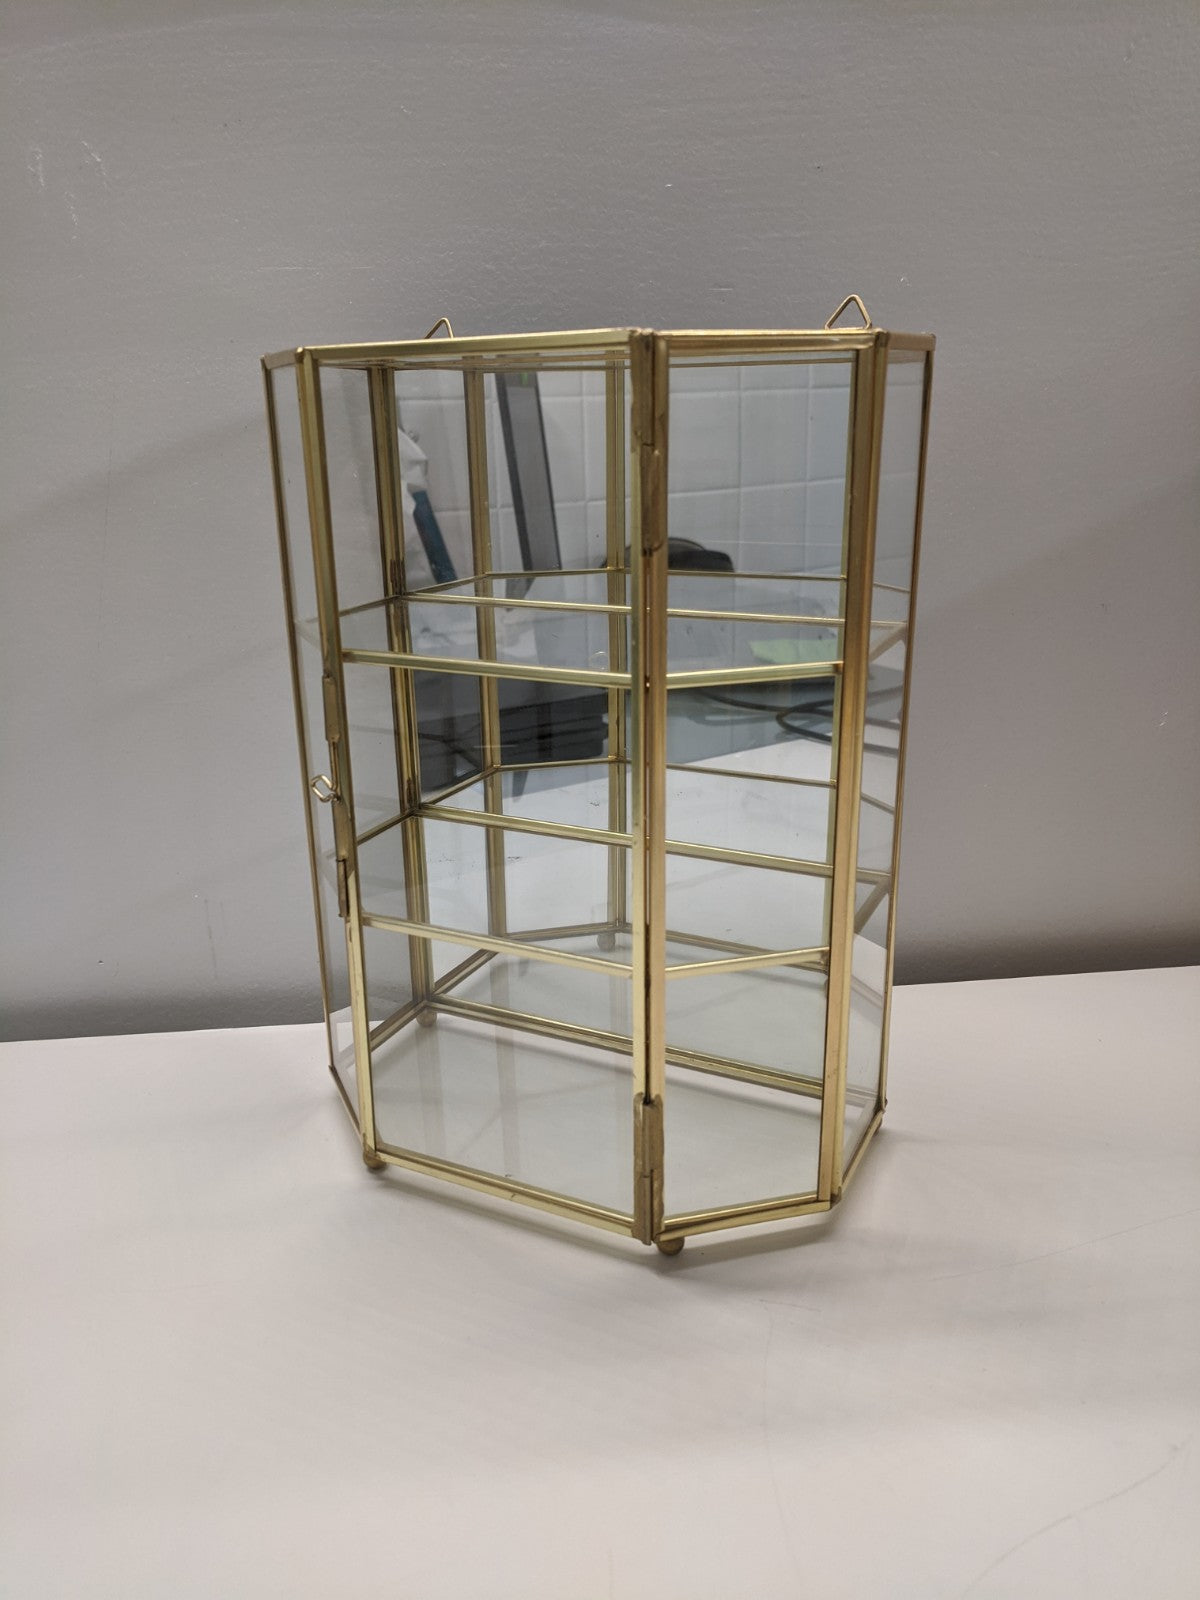 Brass & Glass Mirror Display Shelf